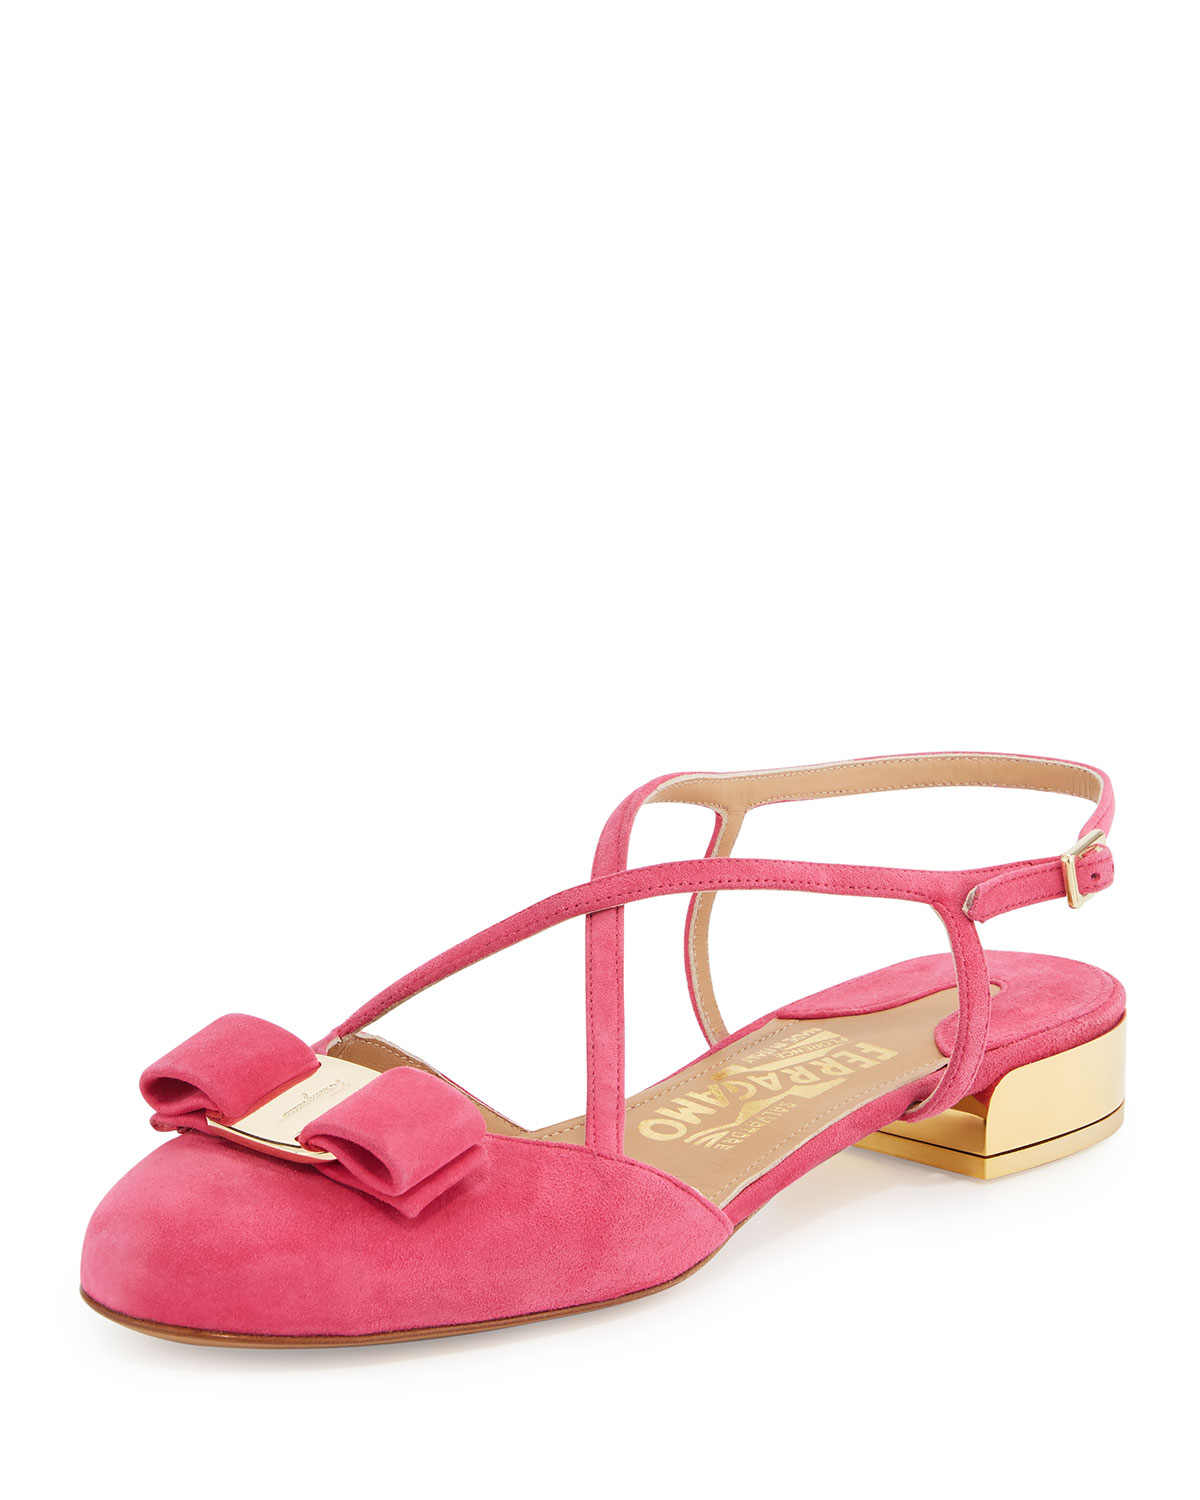 Strappy Suede Sandal, Framboise